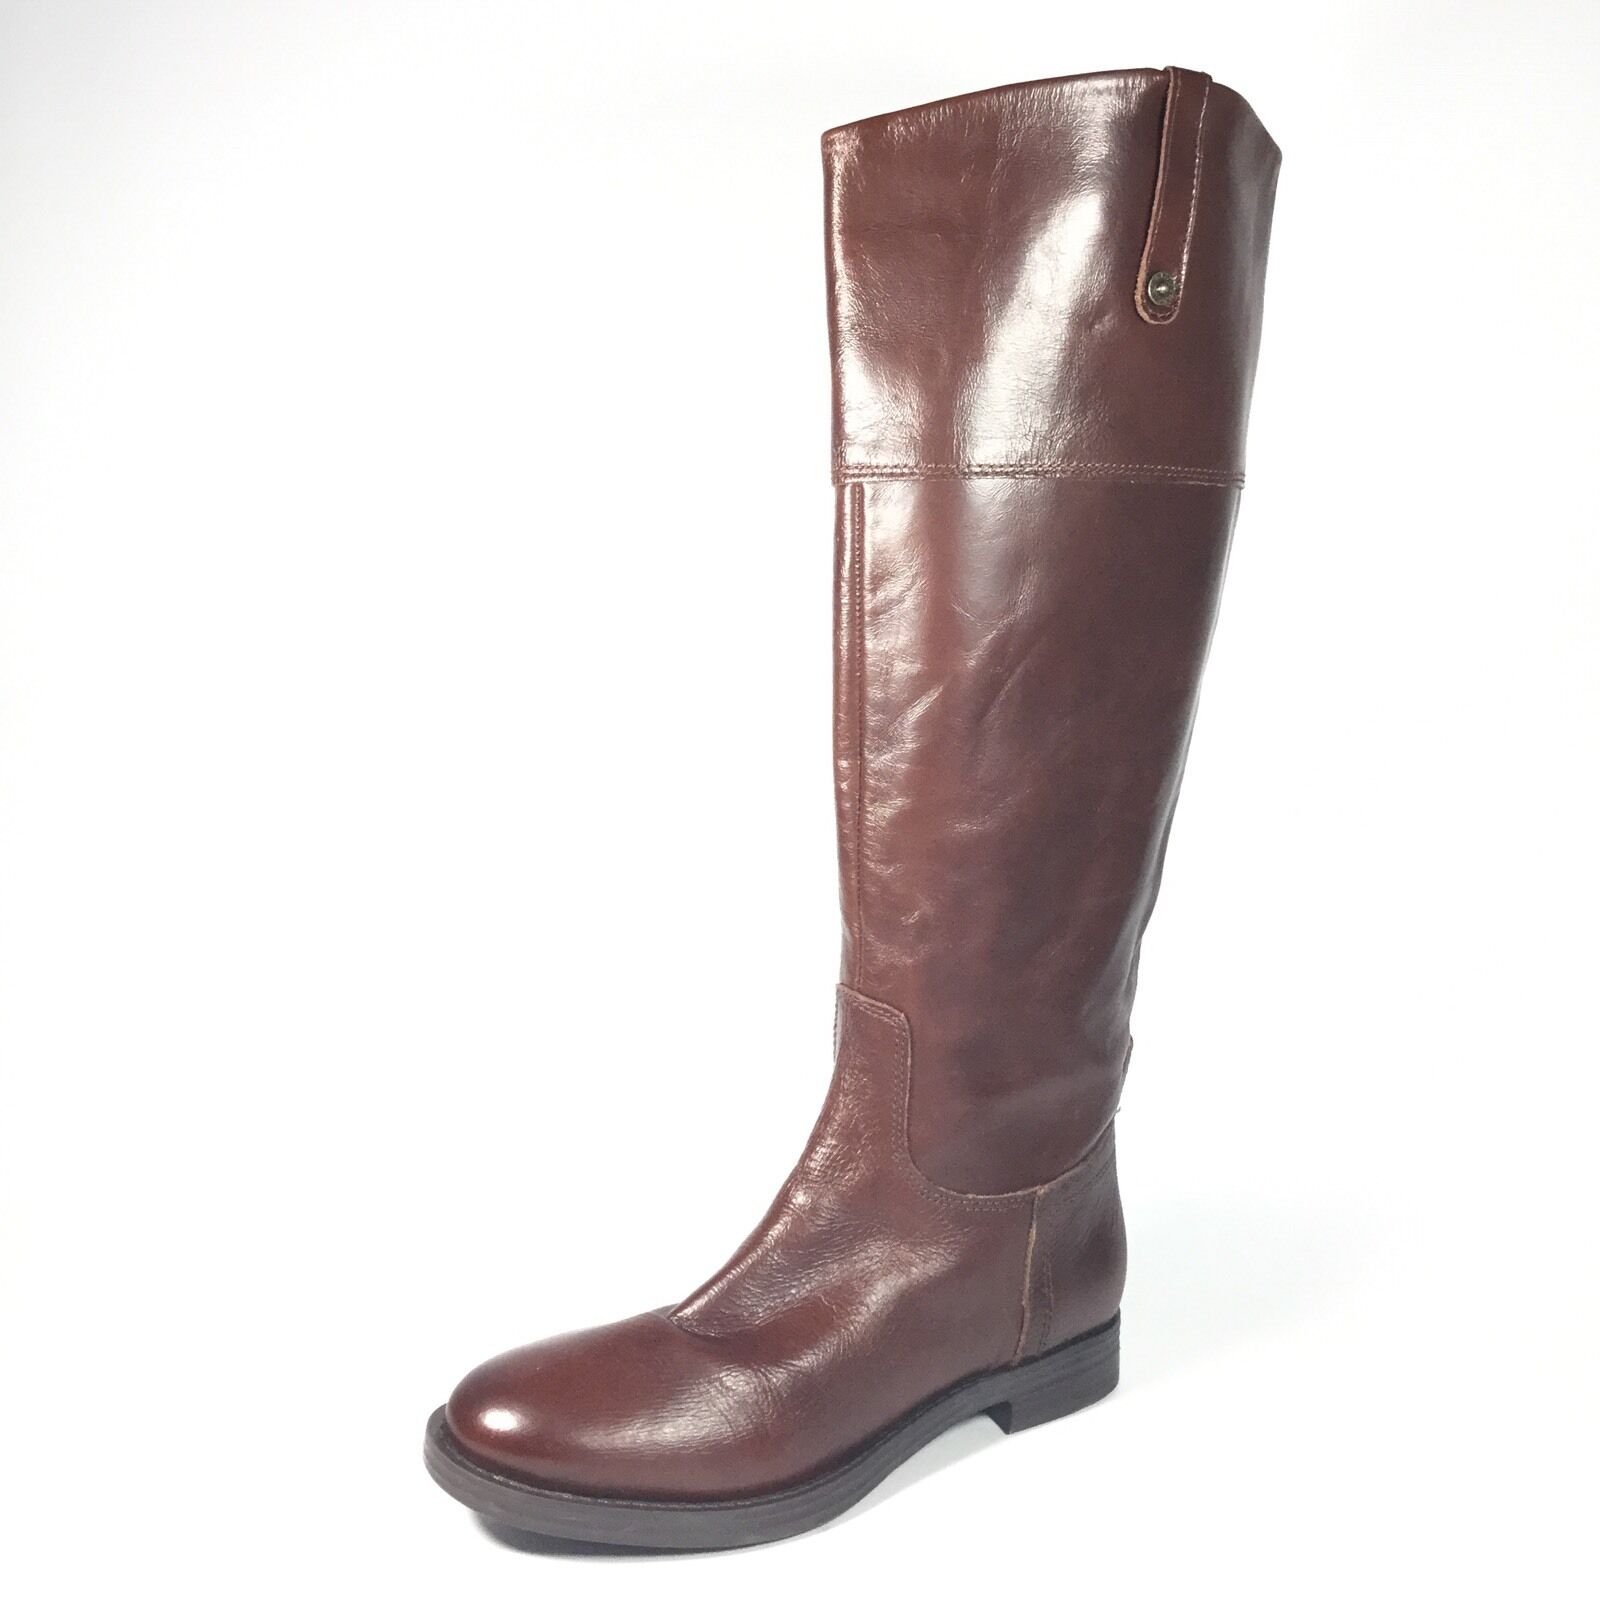 Enzo Angiolini Ellerby Women's Size 6.5 M Brown Leather High Boots